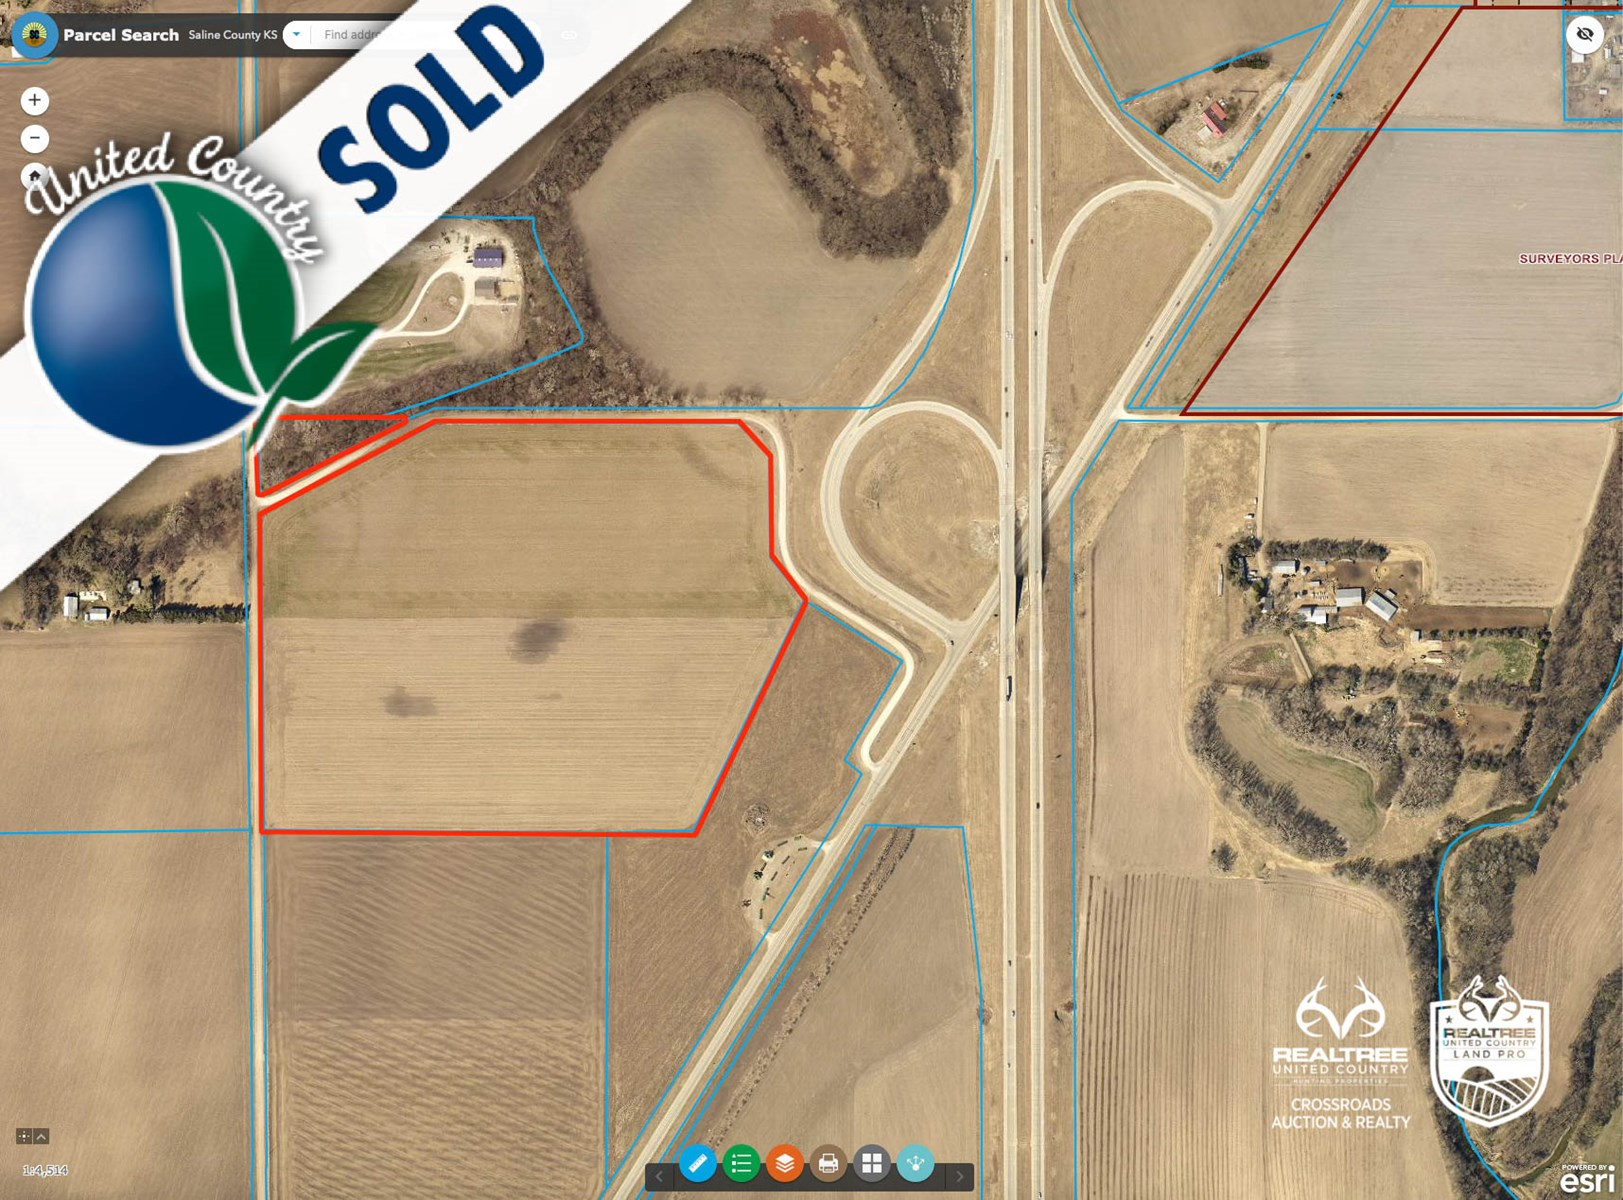 48.1± Acres of Farmland in Southern Saline County, Kansas